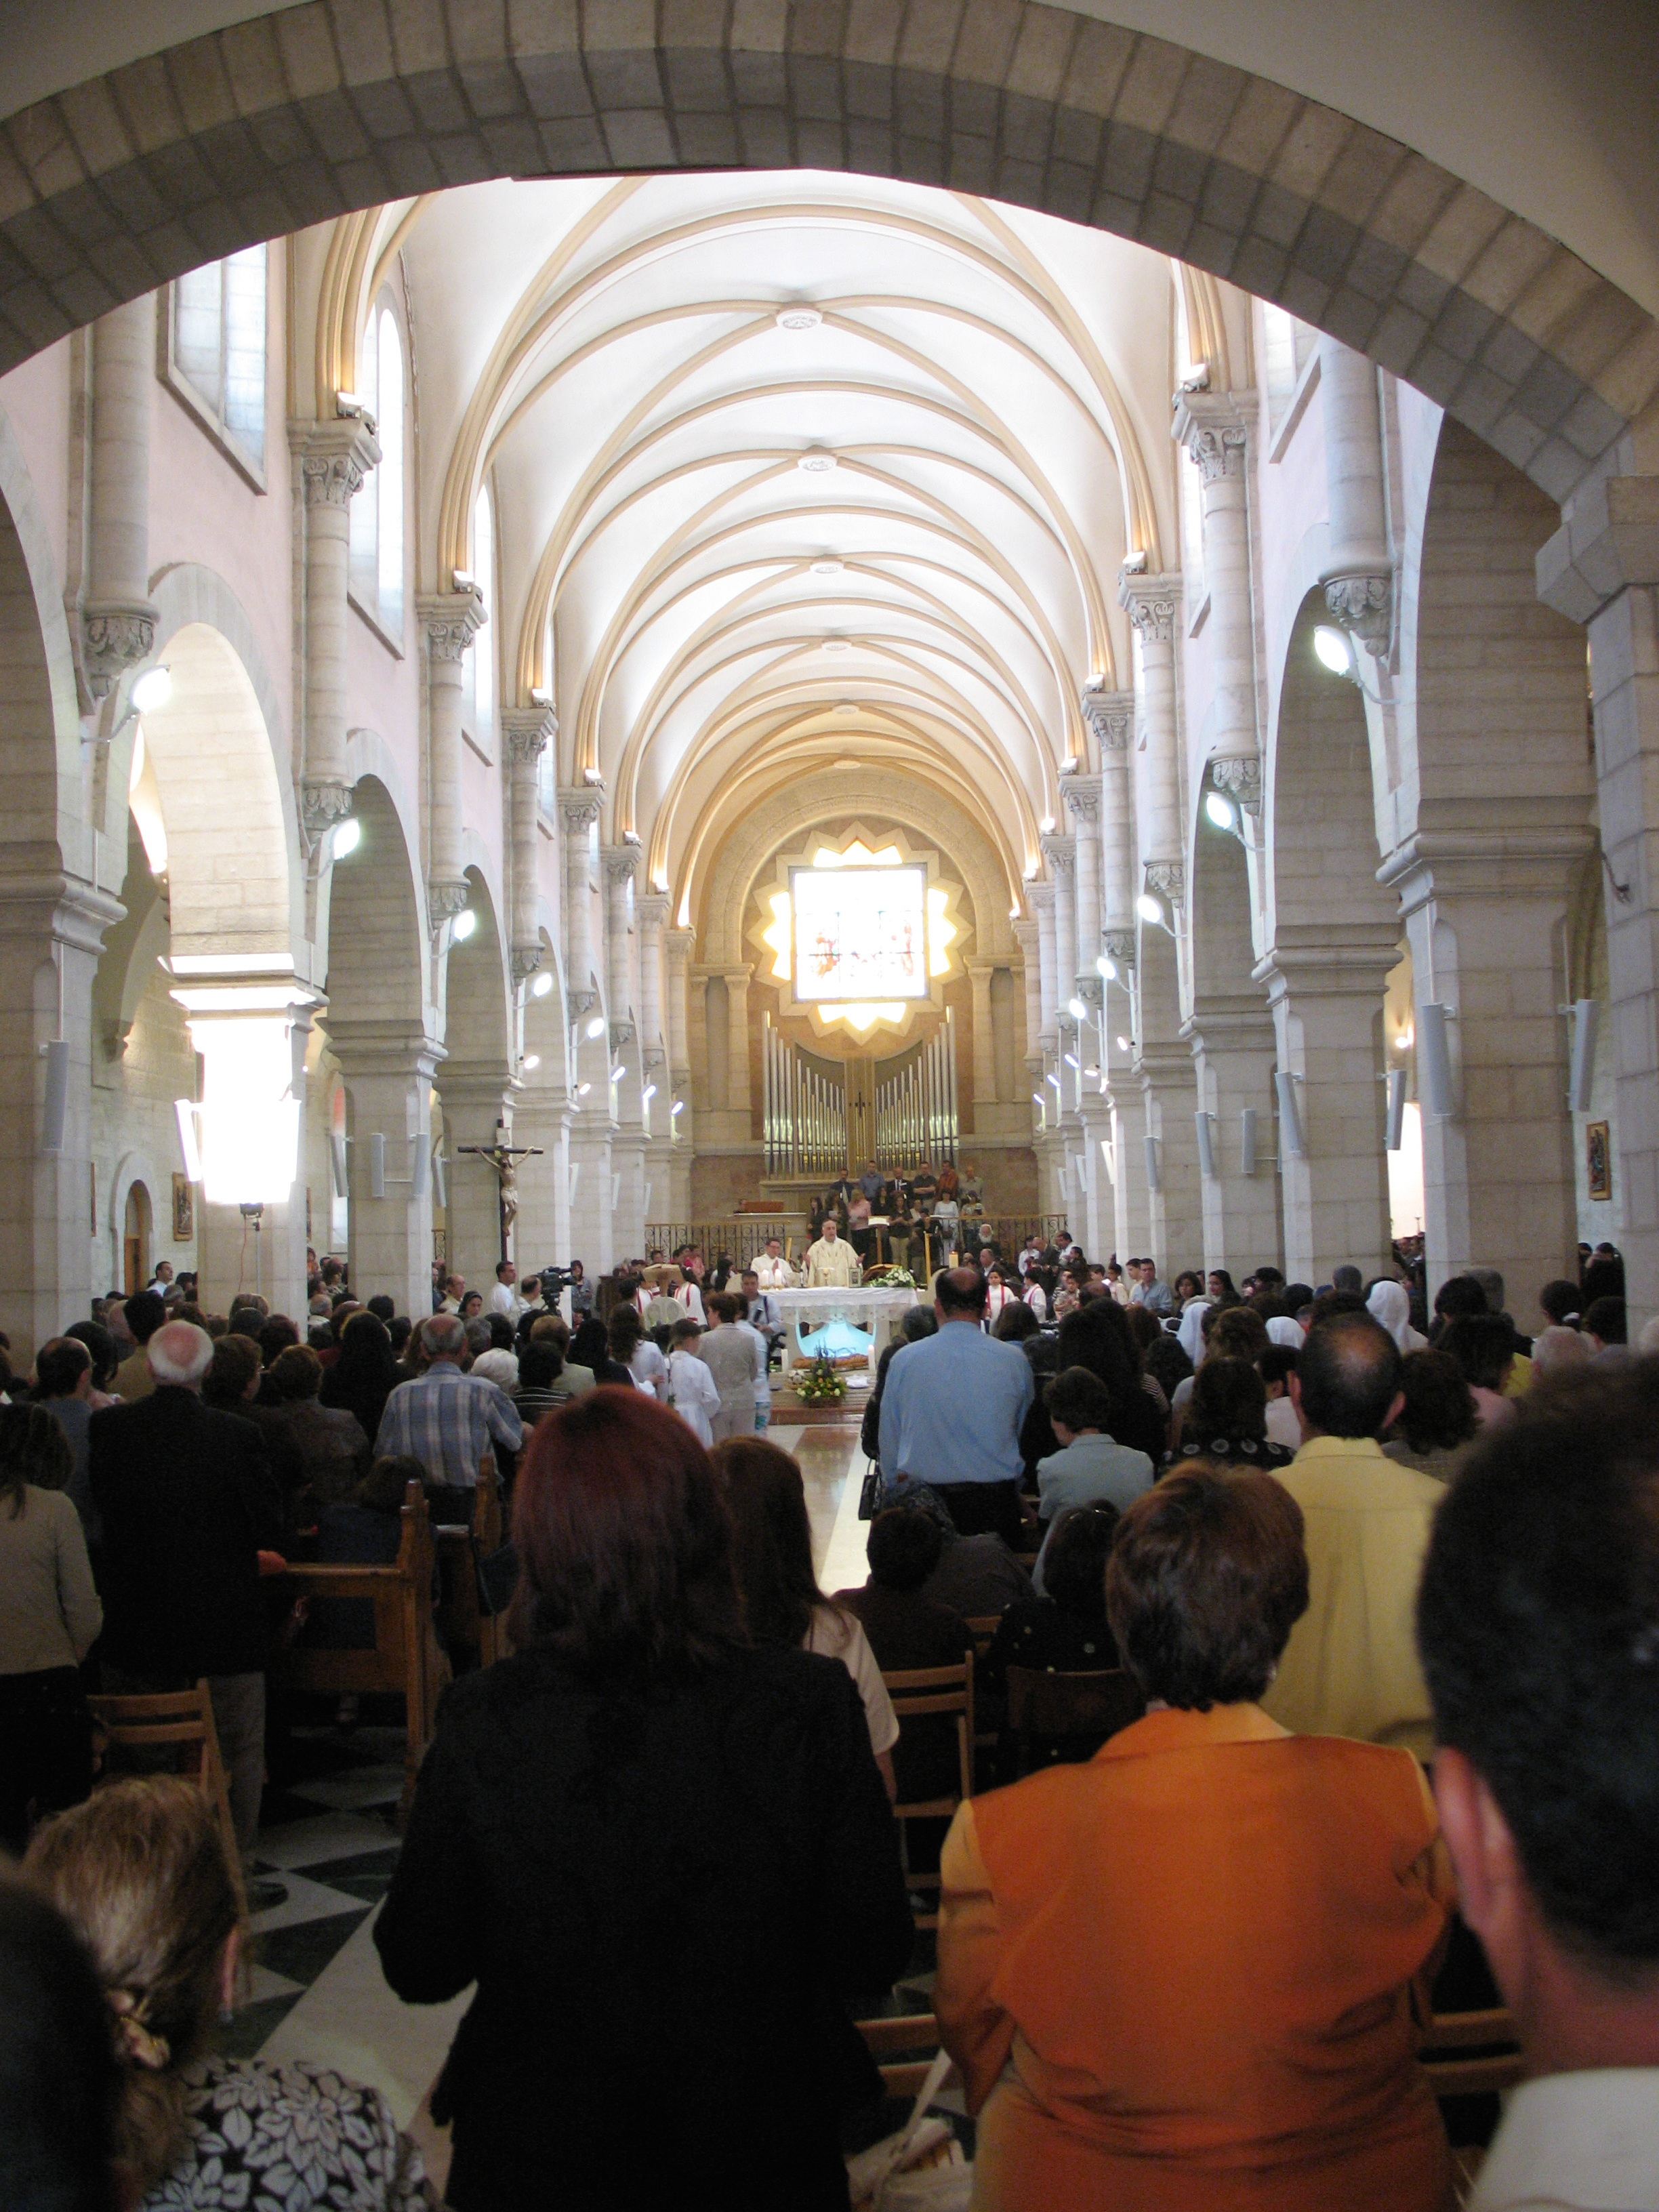 A church filled with worshippers for Mass